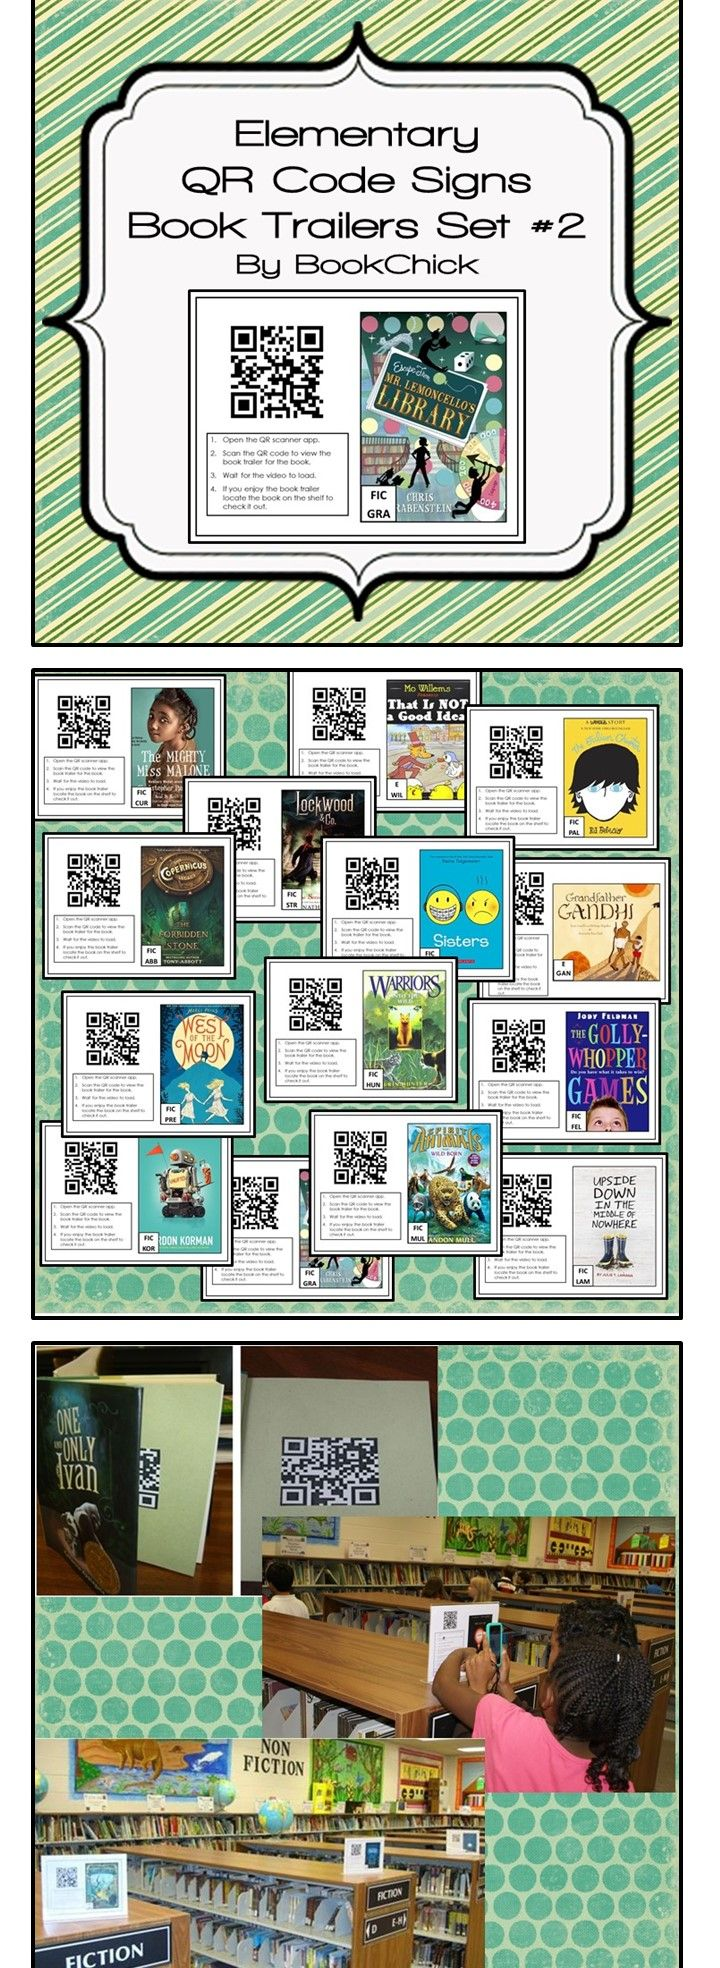 Use QR book signs to promote reading in your classroom or library.